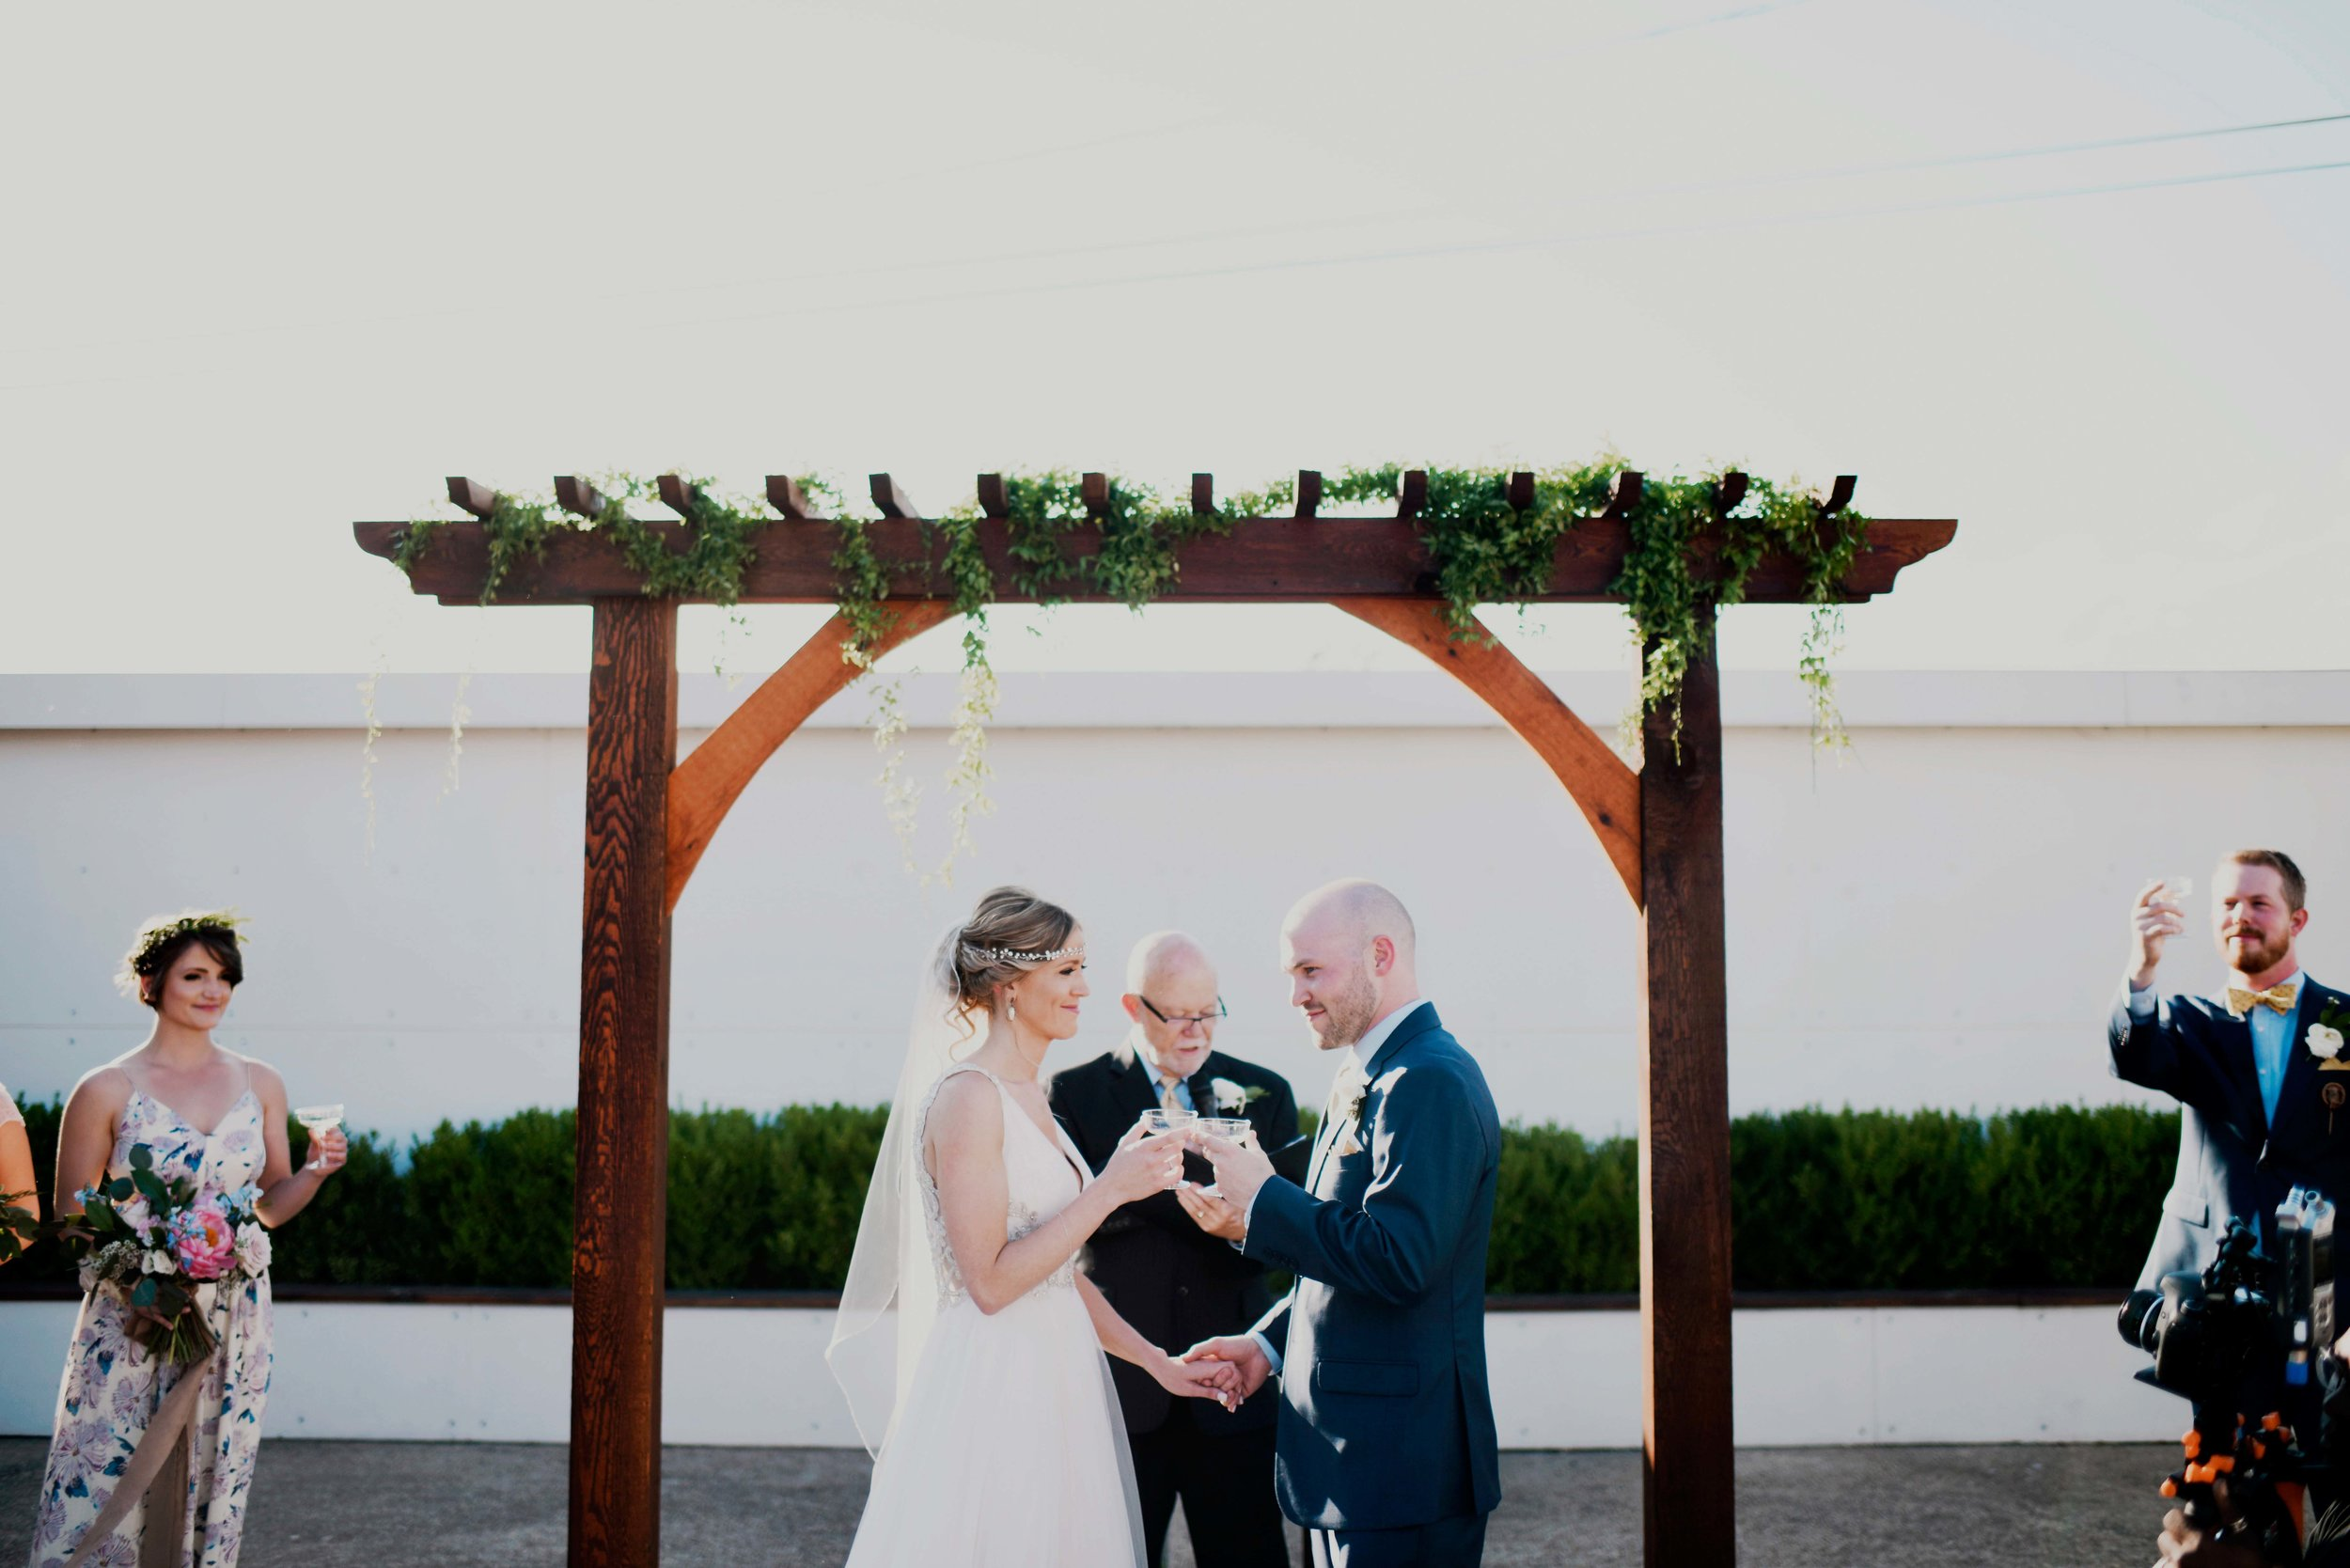 TAYLOR + COLLIN  Photography |  A Sea of Love